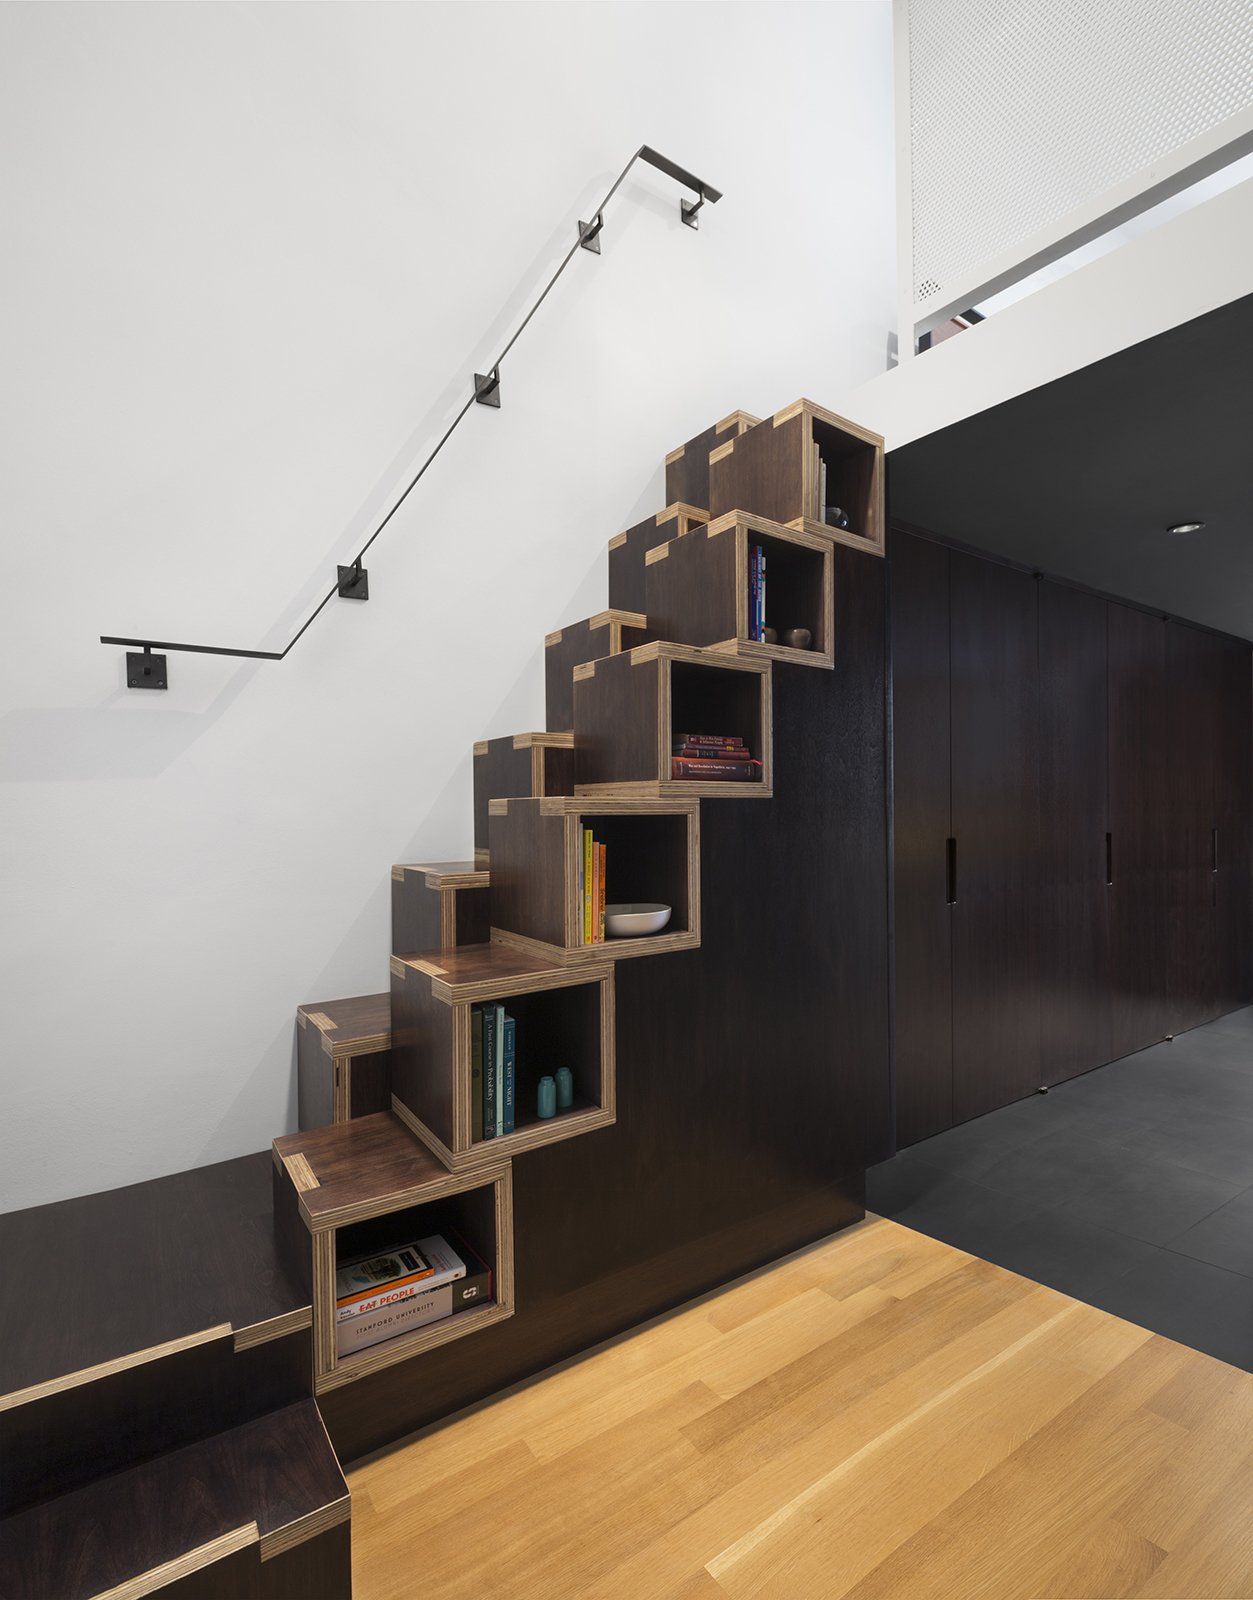 """Confronted with limited space to build the staircase needed to access the living area and bedroom on the second level, General Assembly designed a custom solution. """"These stairs are not an ideal design for everyone and shouldn't be used as primary stairs—we like to think of them more as millwork with a little bonus to it, than an actual staircase,"""" Zames says. """"The cube construction of the stairs actually came from a budget standpoint. We were very tight on budget and wanted to maximize the material as much as possible.""""  190+ Best Modern Staircase Ideas from Smart Staircases that Double as Storage"""